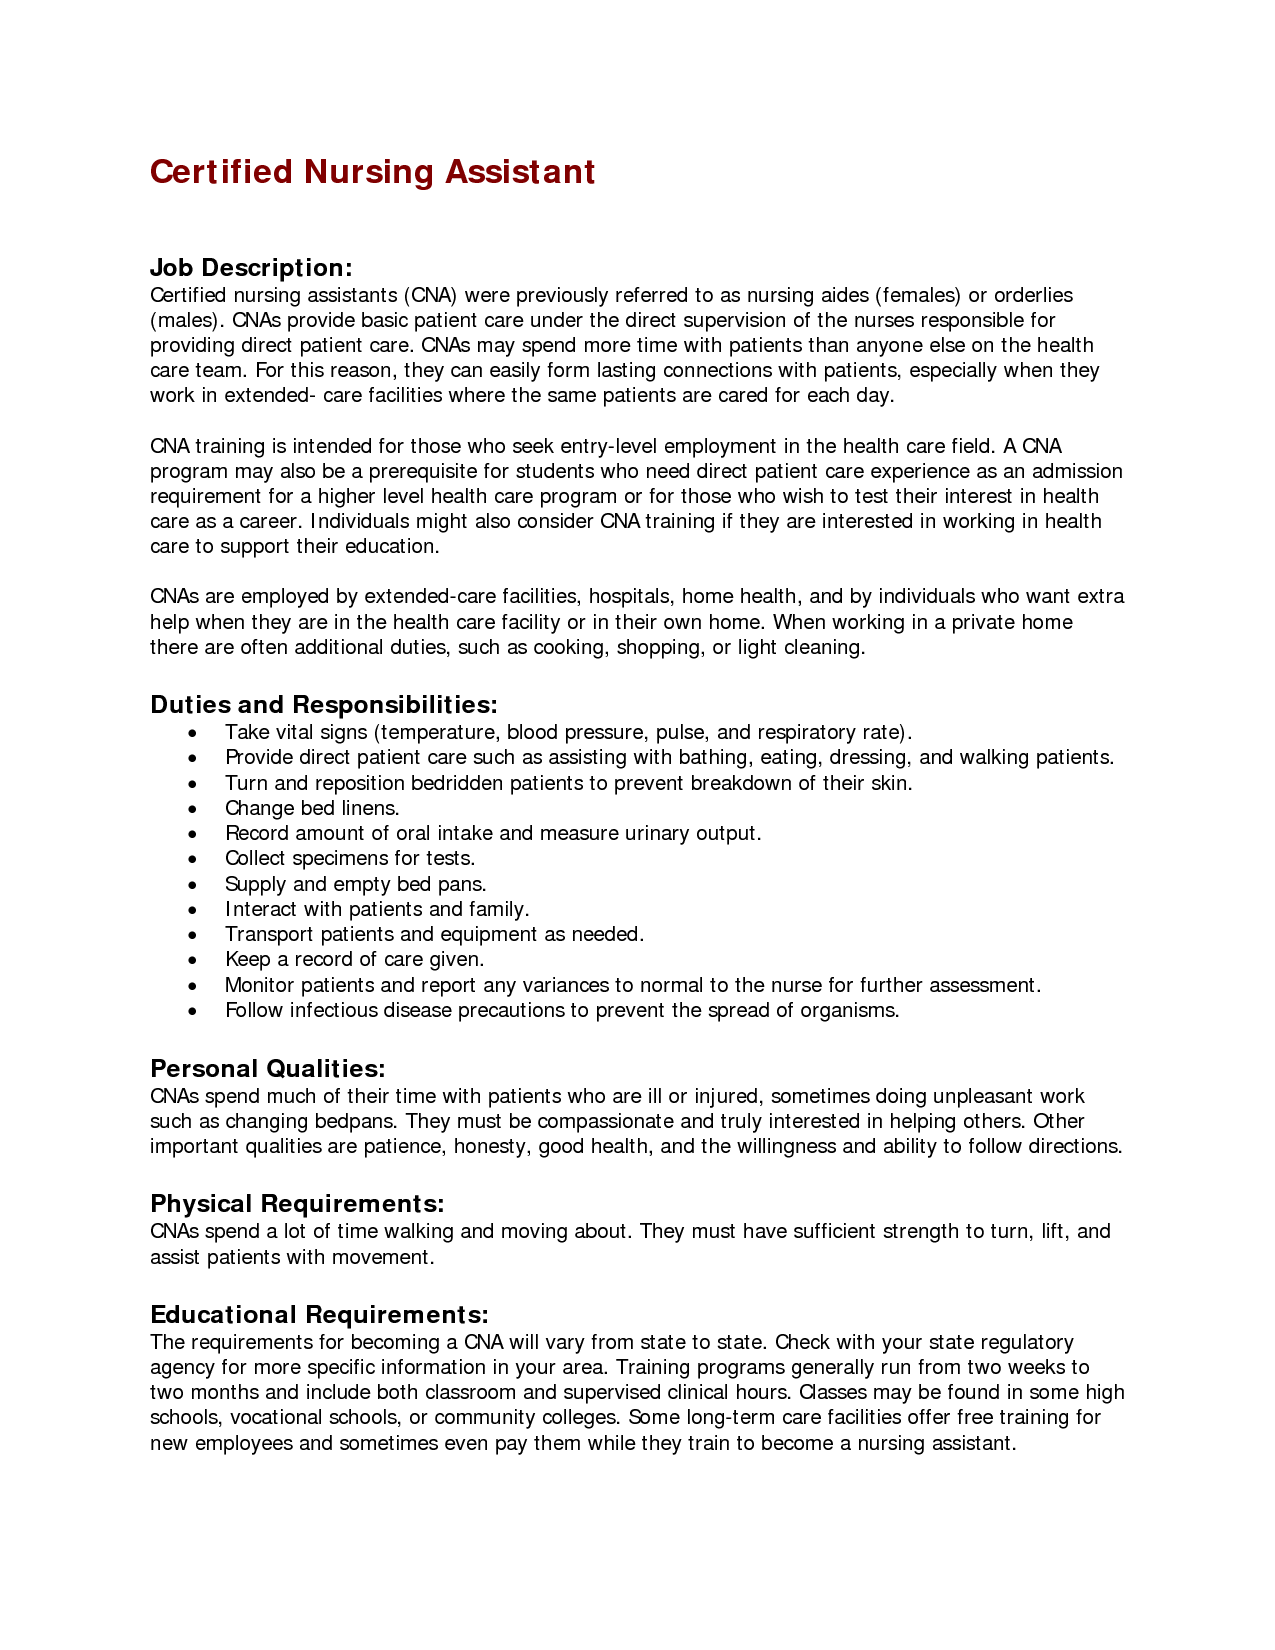 nurse responsibilities resume